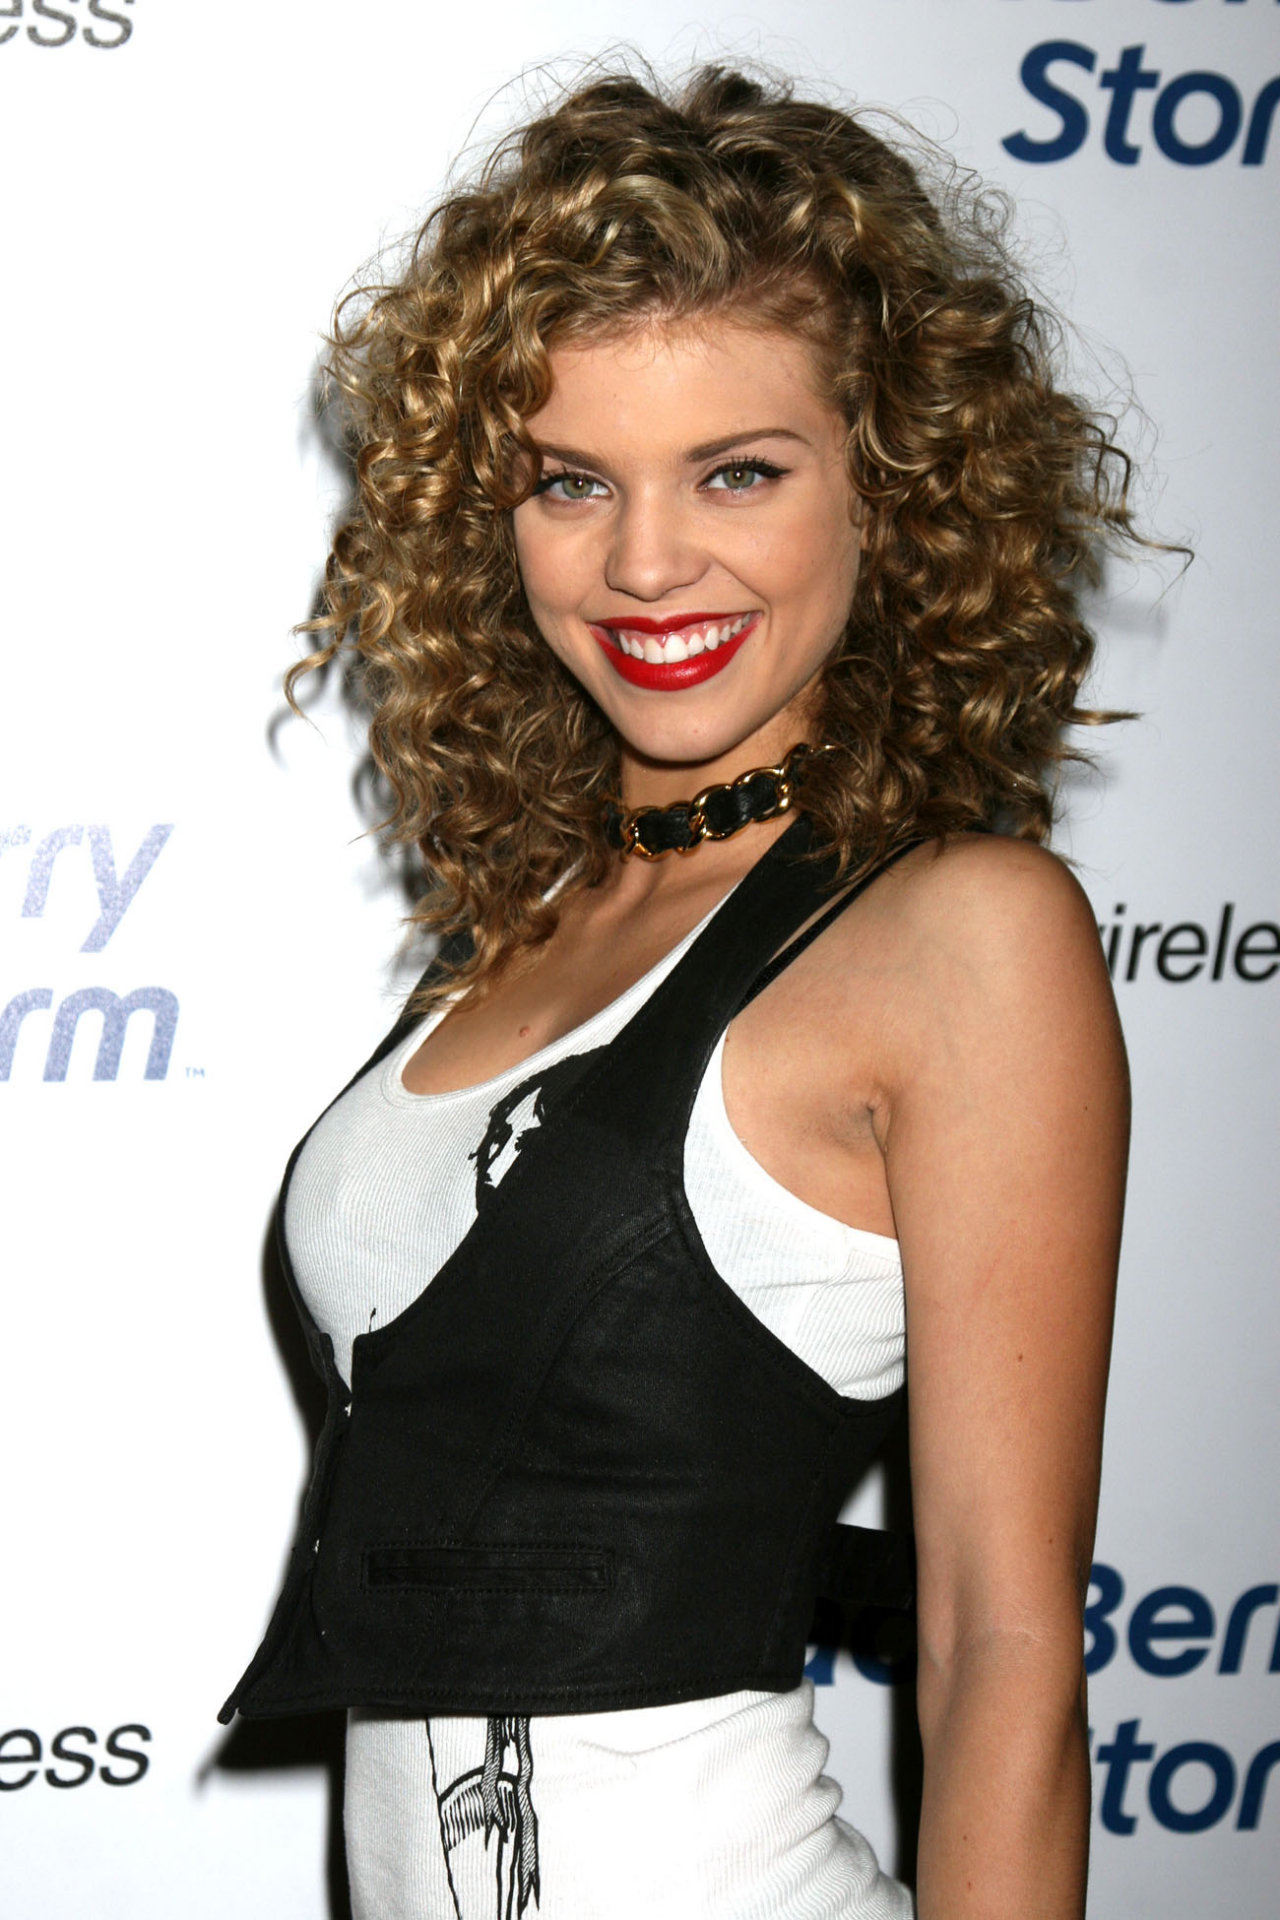 AnnaLynne McCord leaked wallpapers